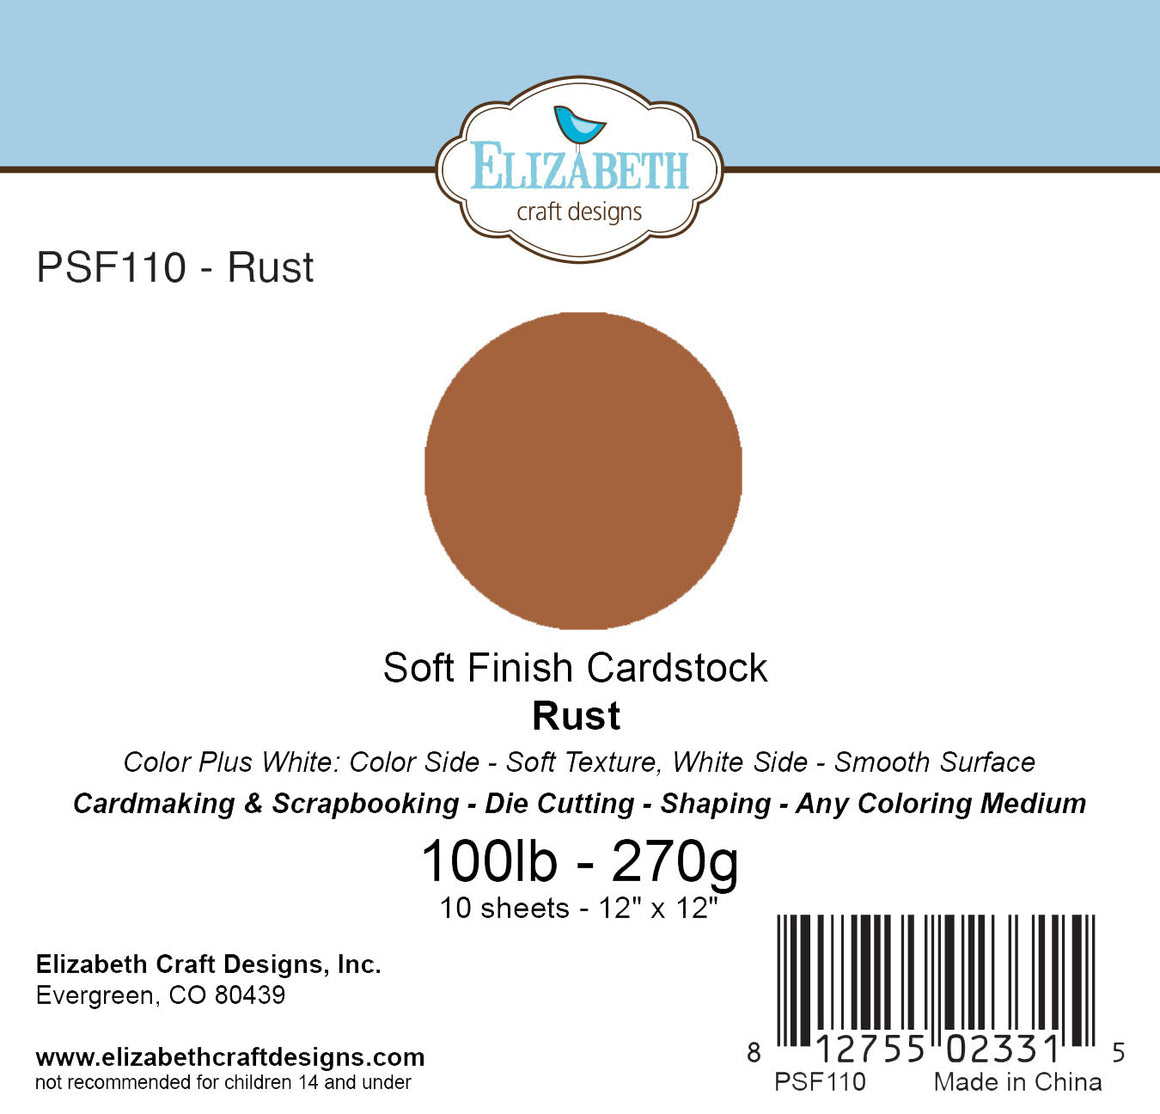 Soft Finish Cardstock, Rust